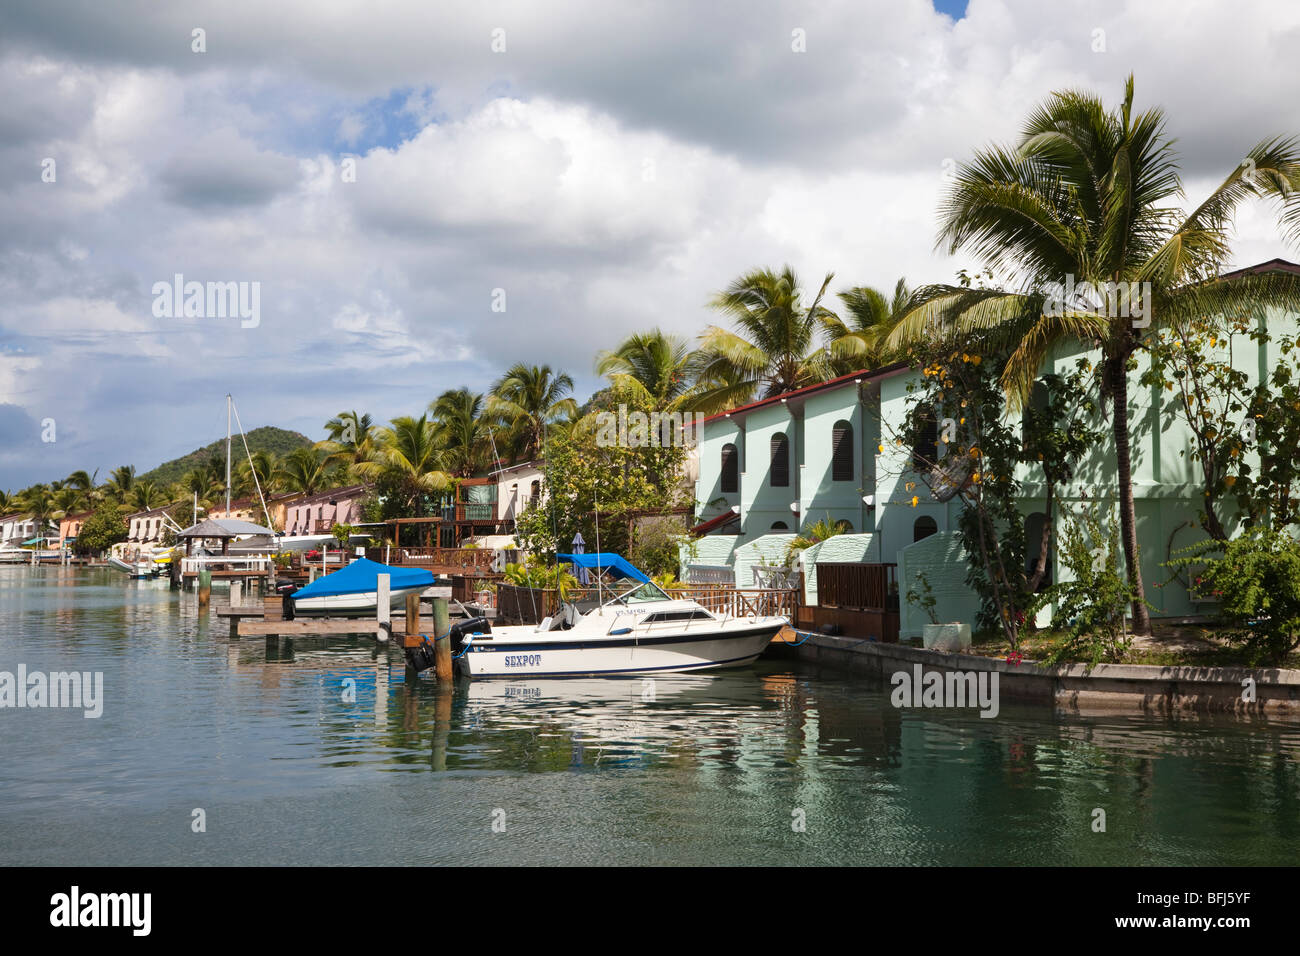 Harbourside houses at the marina in Jolly Harbour, Antigua - Stock Image